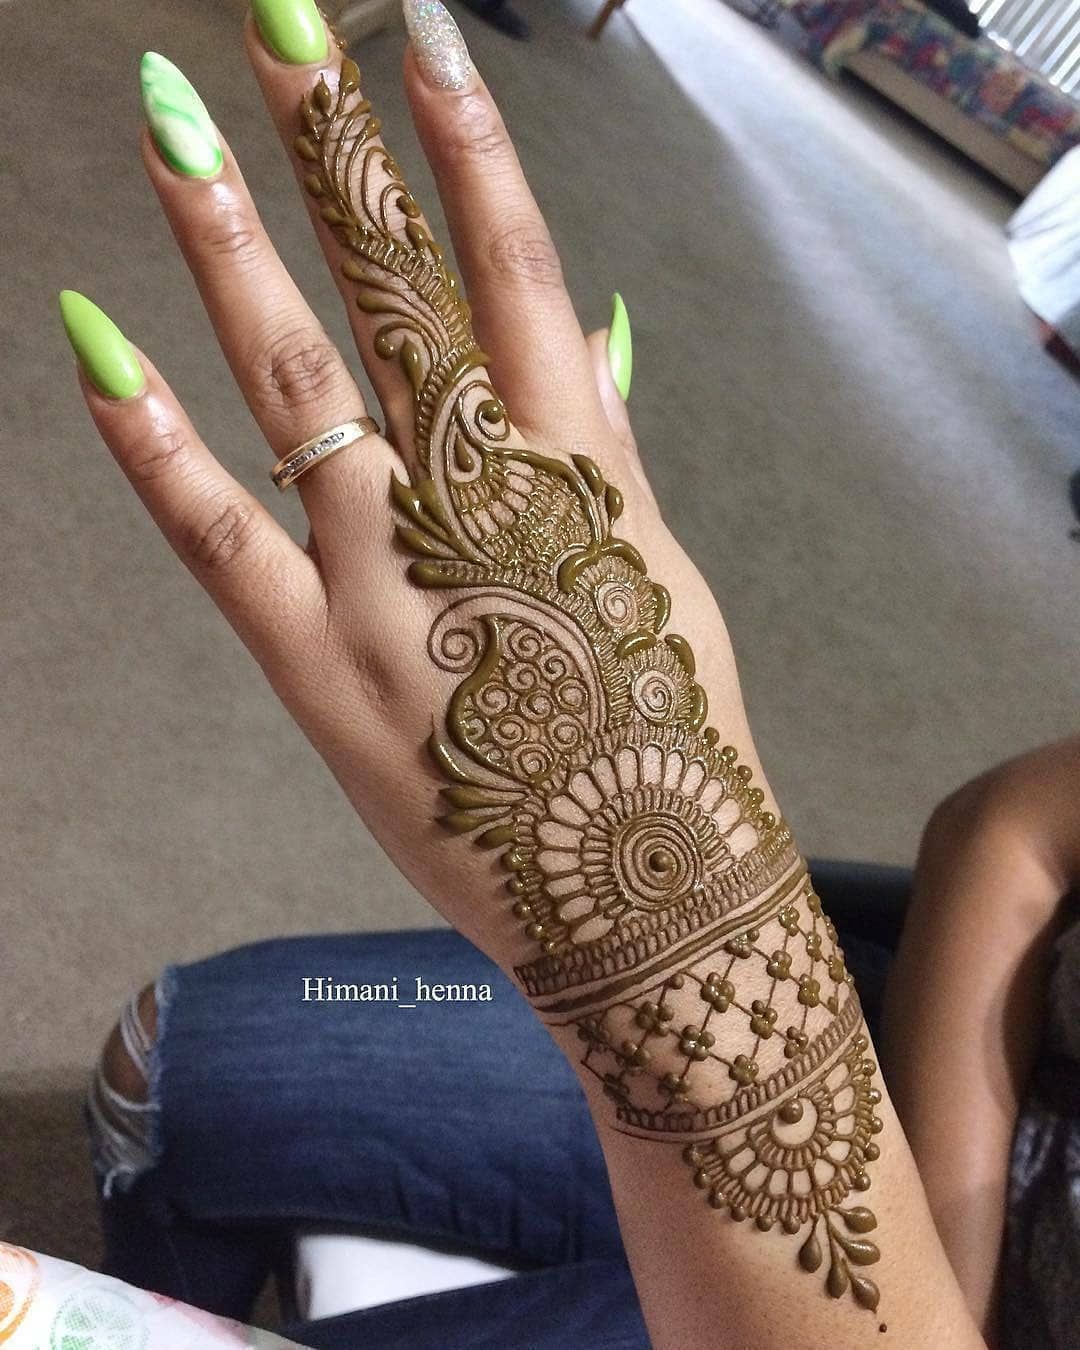 Likes comments stylish mehndi design stylishmehndidesign on instagram also top beautiful peacock feather designs tattoo tatuagem rh br pinterest